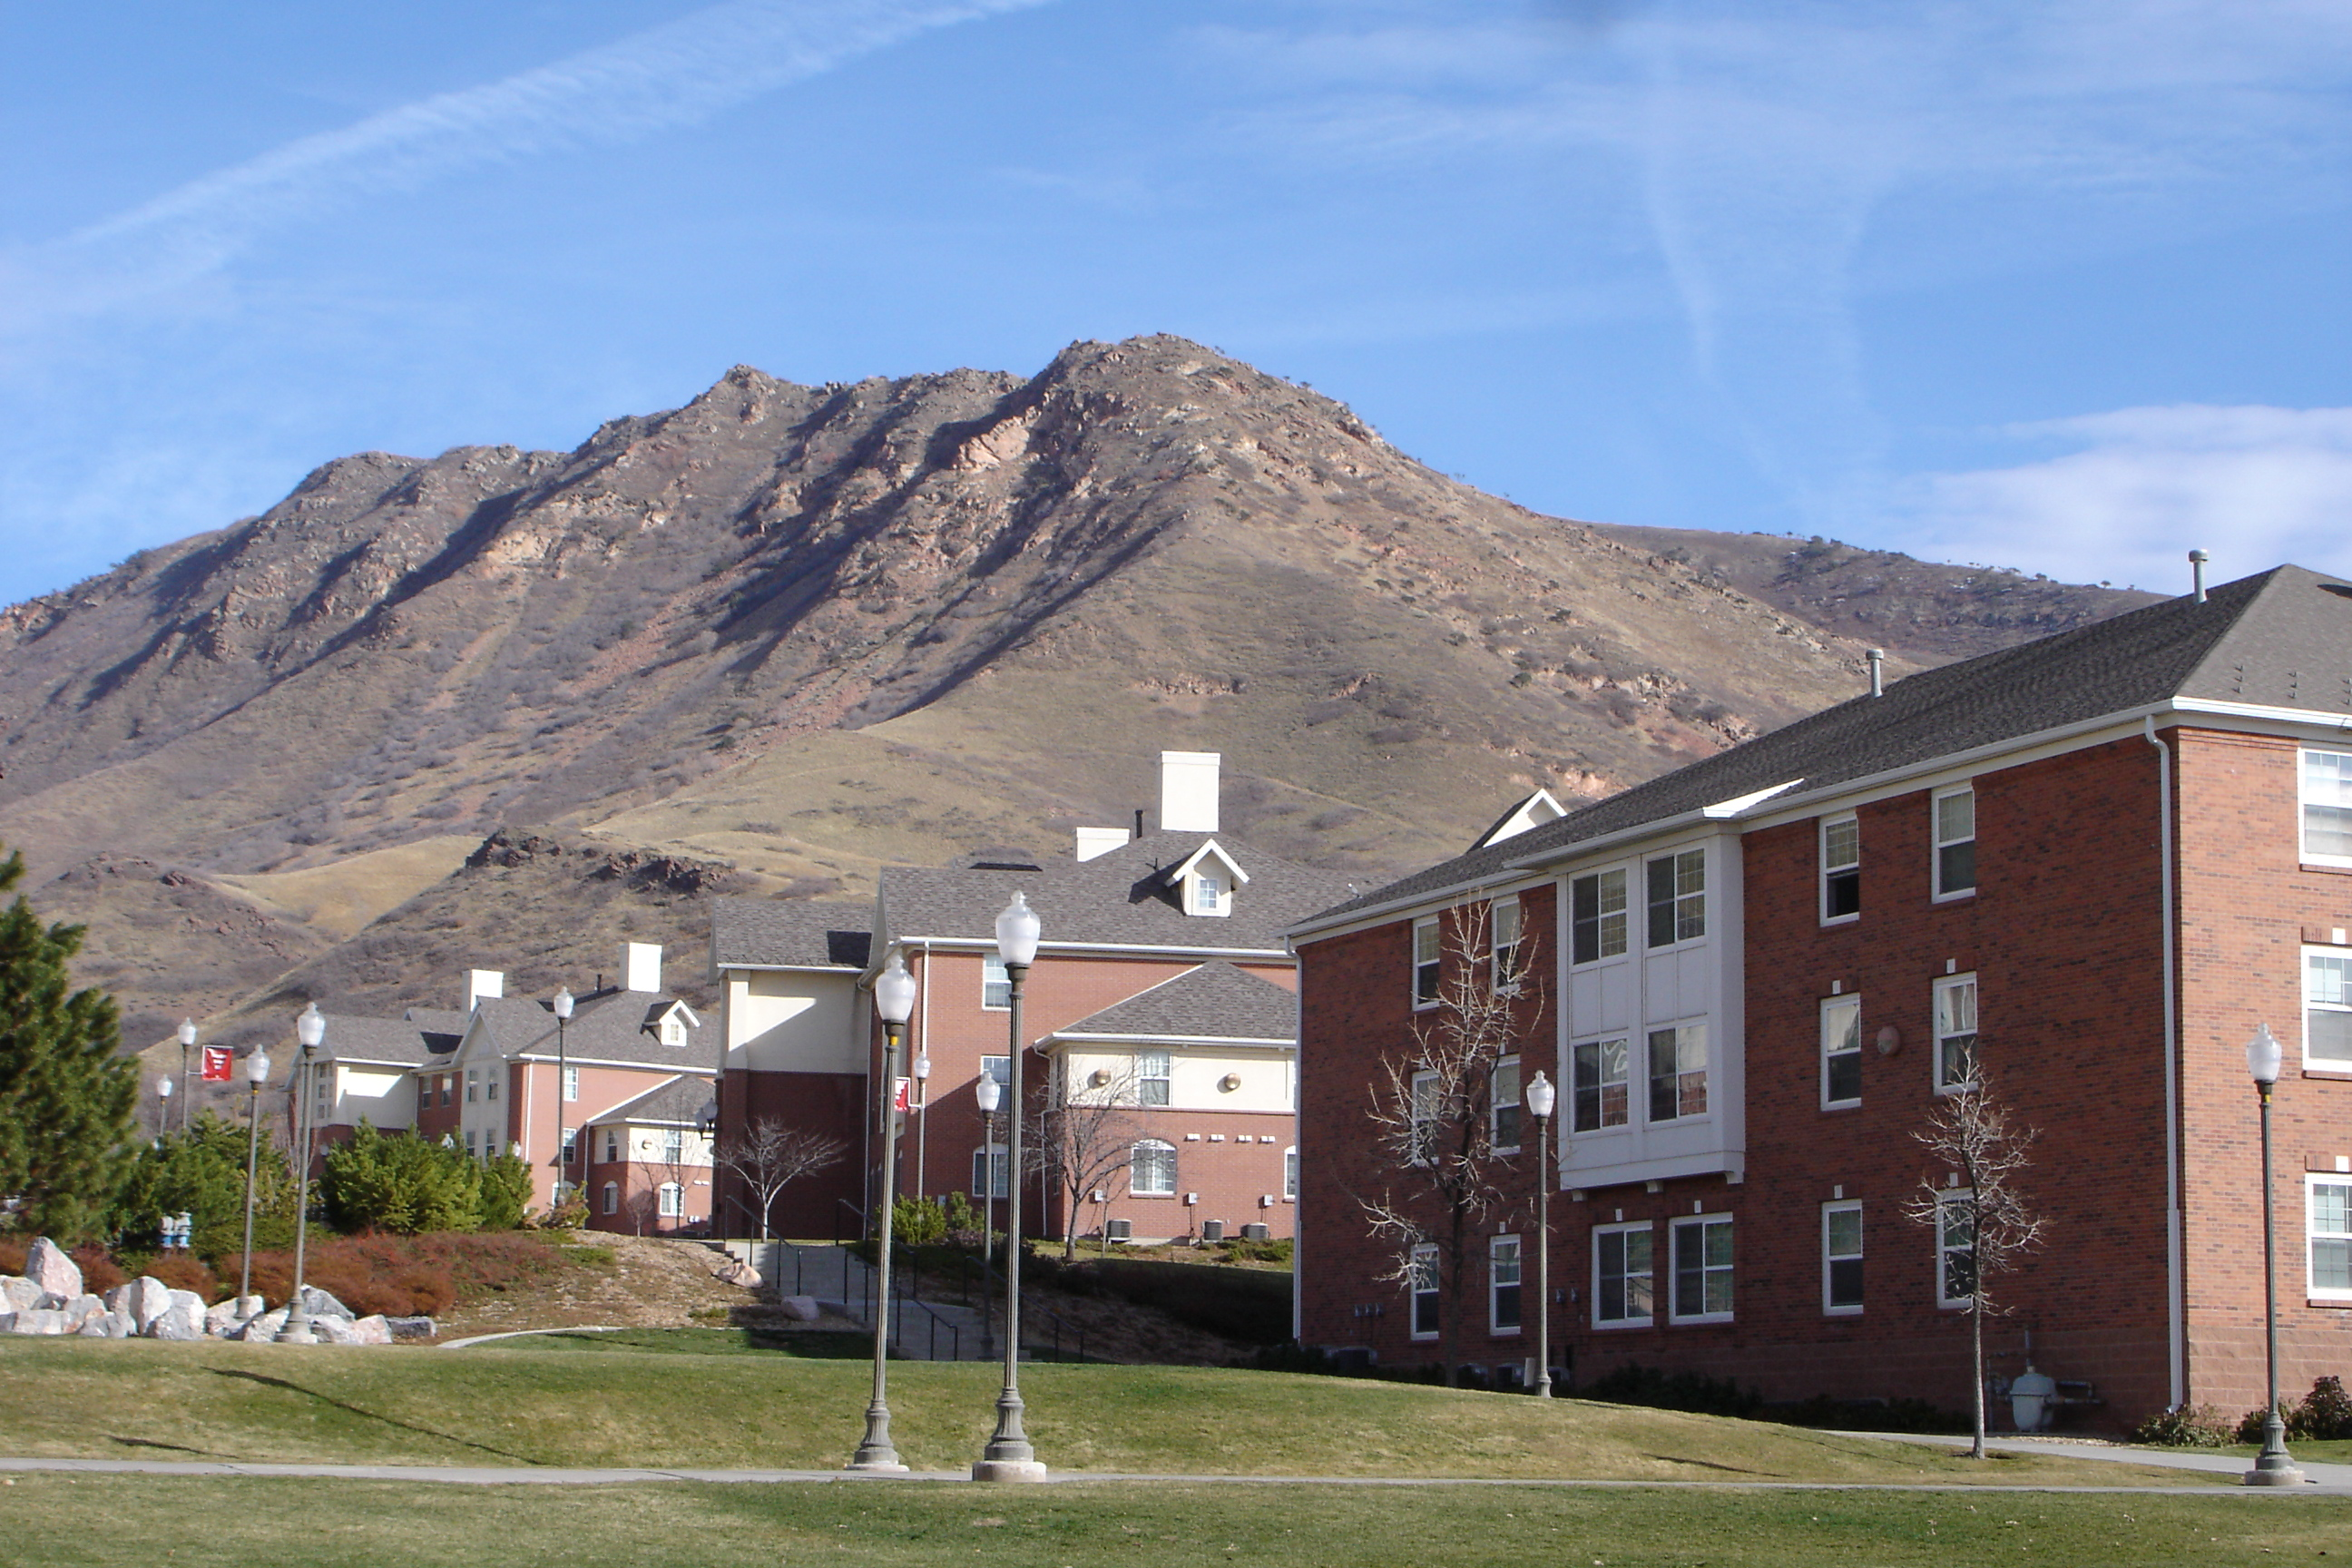 File University of Utah Student Housing 28 November 2012 JPG